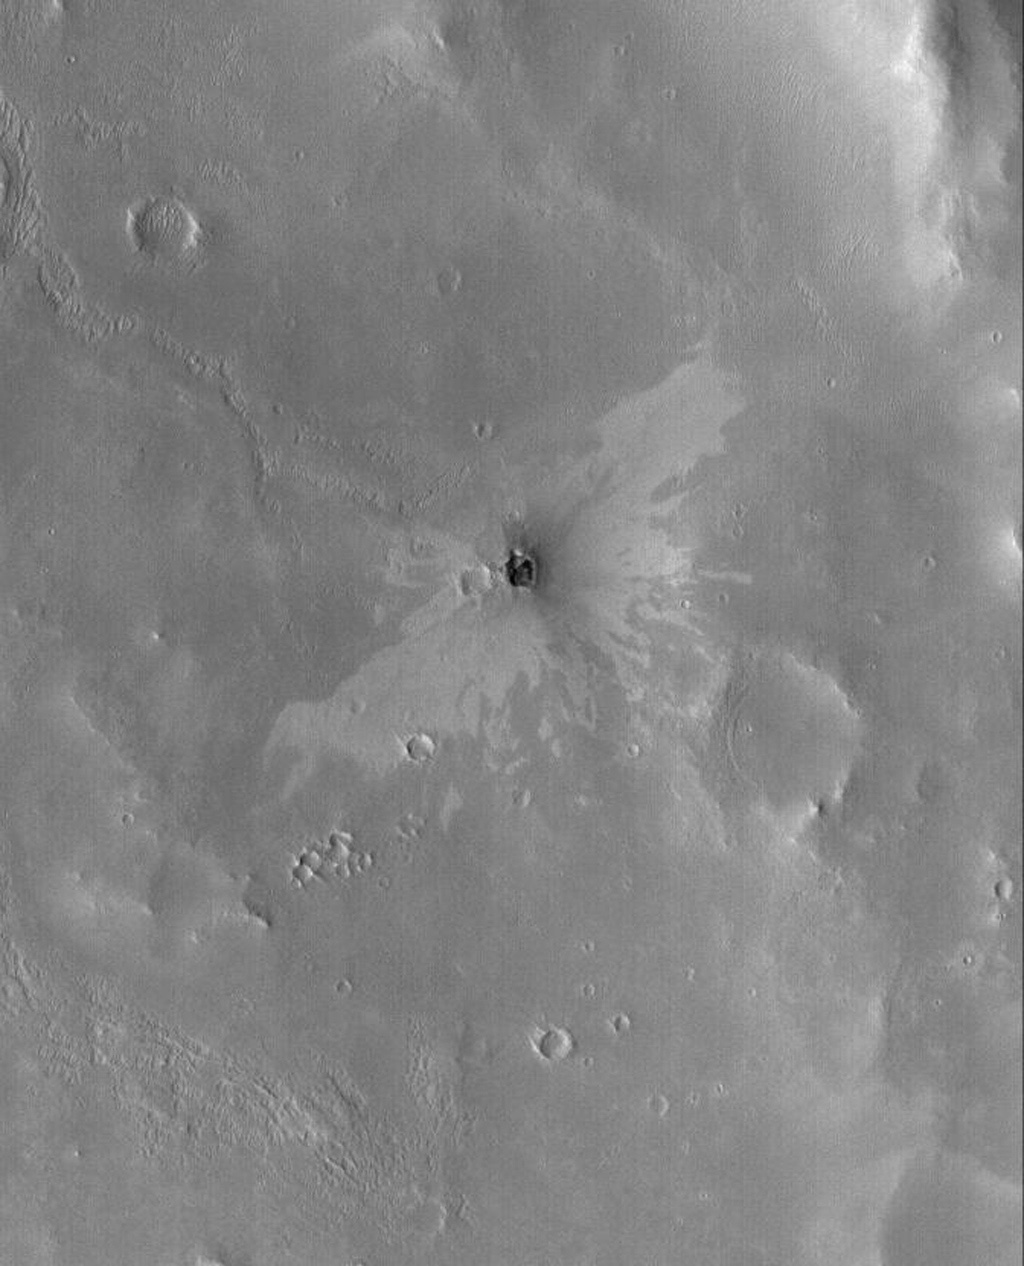 NASA's Mars Global Surveyor shows a small impact crater with a 'butterfly' ejecta pattern. The butterfly pattern results from an oblique impact.